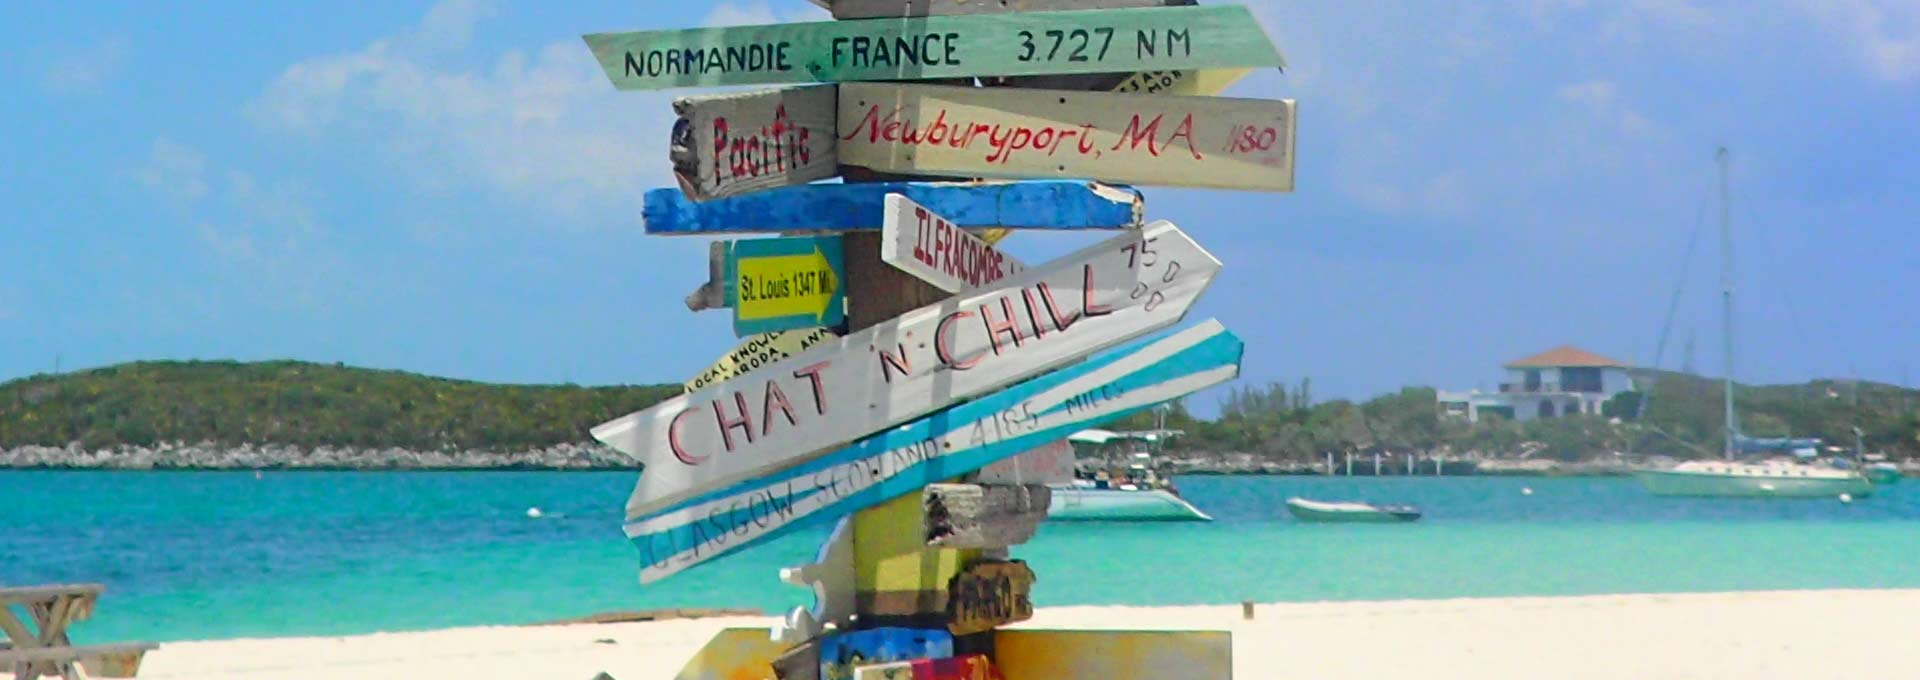 Play with Stingrays at Chat N Chill in Exuma